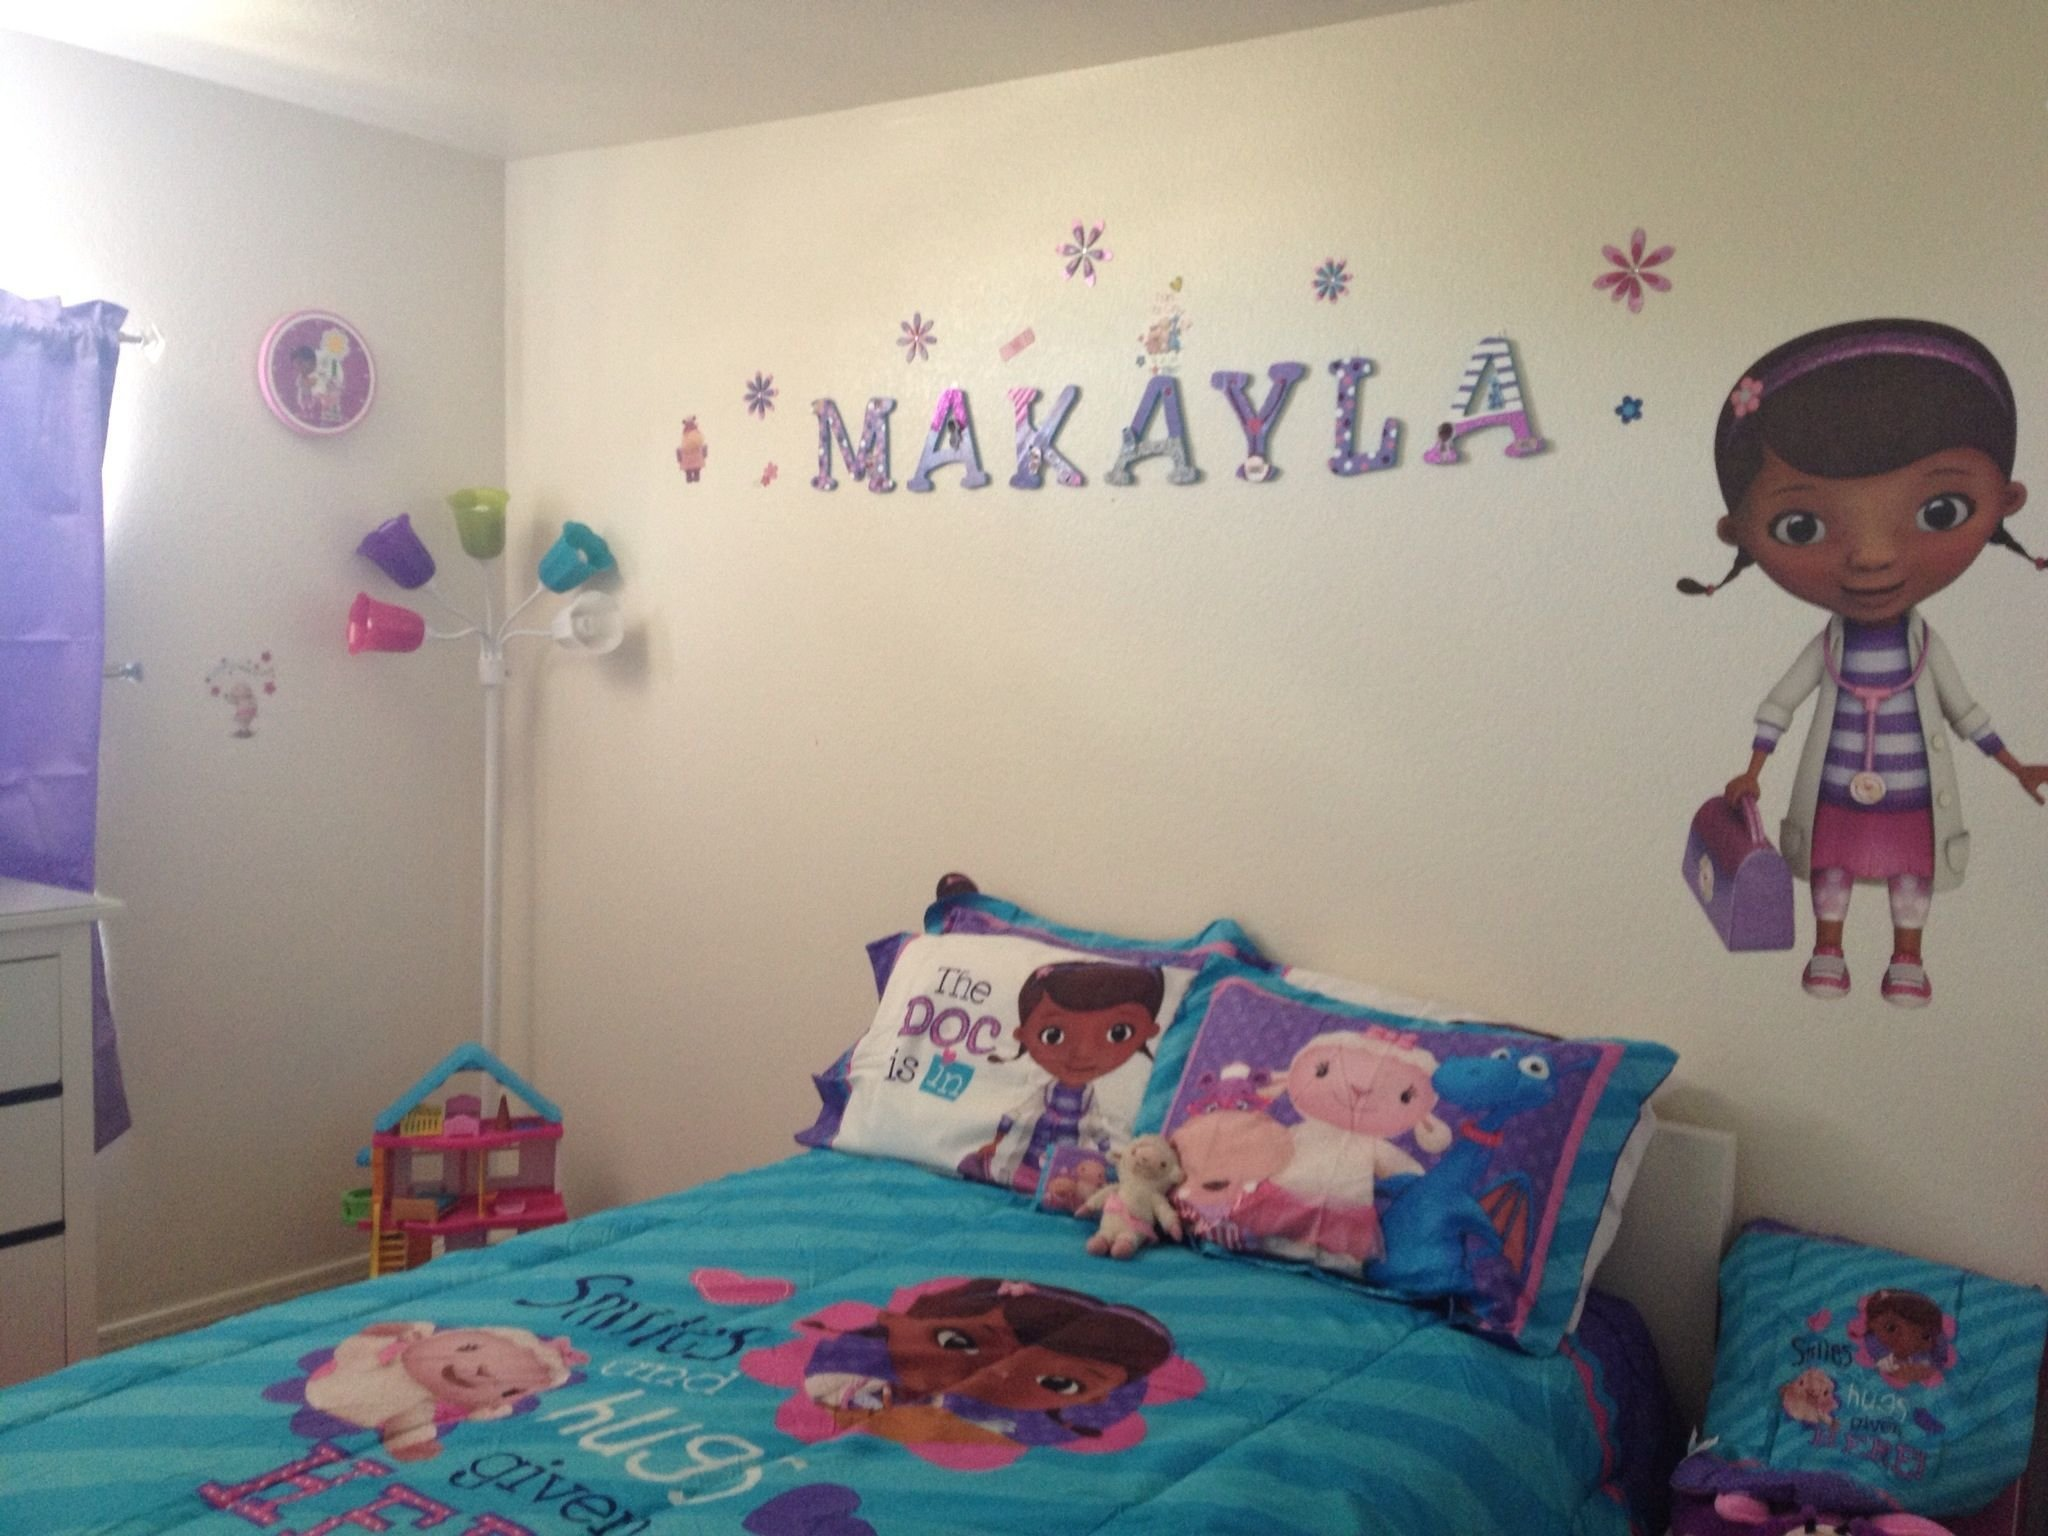 Best Doc Mcstuffins Room Makeover Kid's Room Pinterest Room Room Ideas And Bedrooms With Pictures